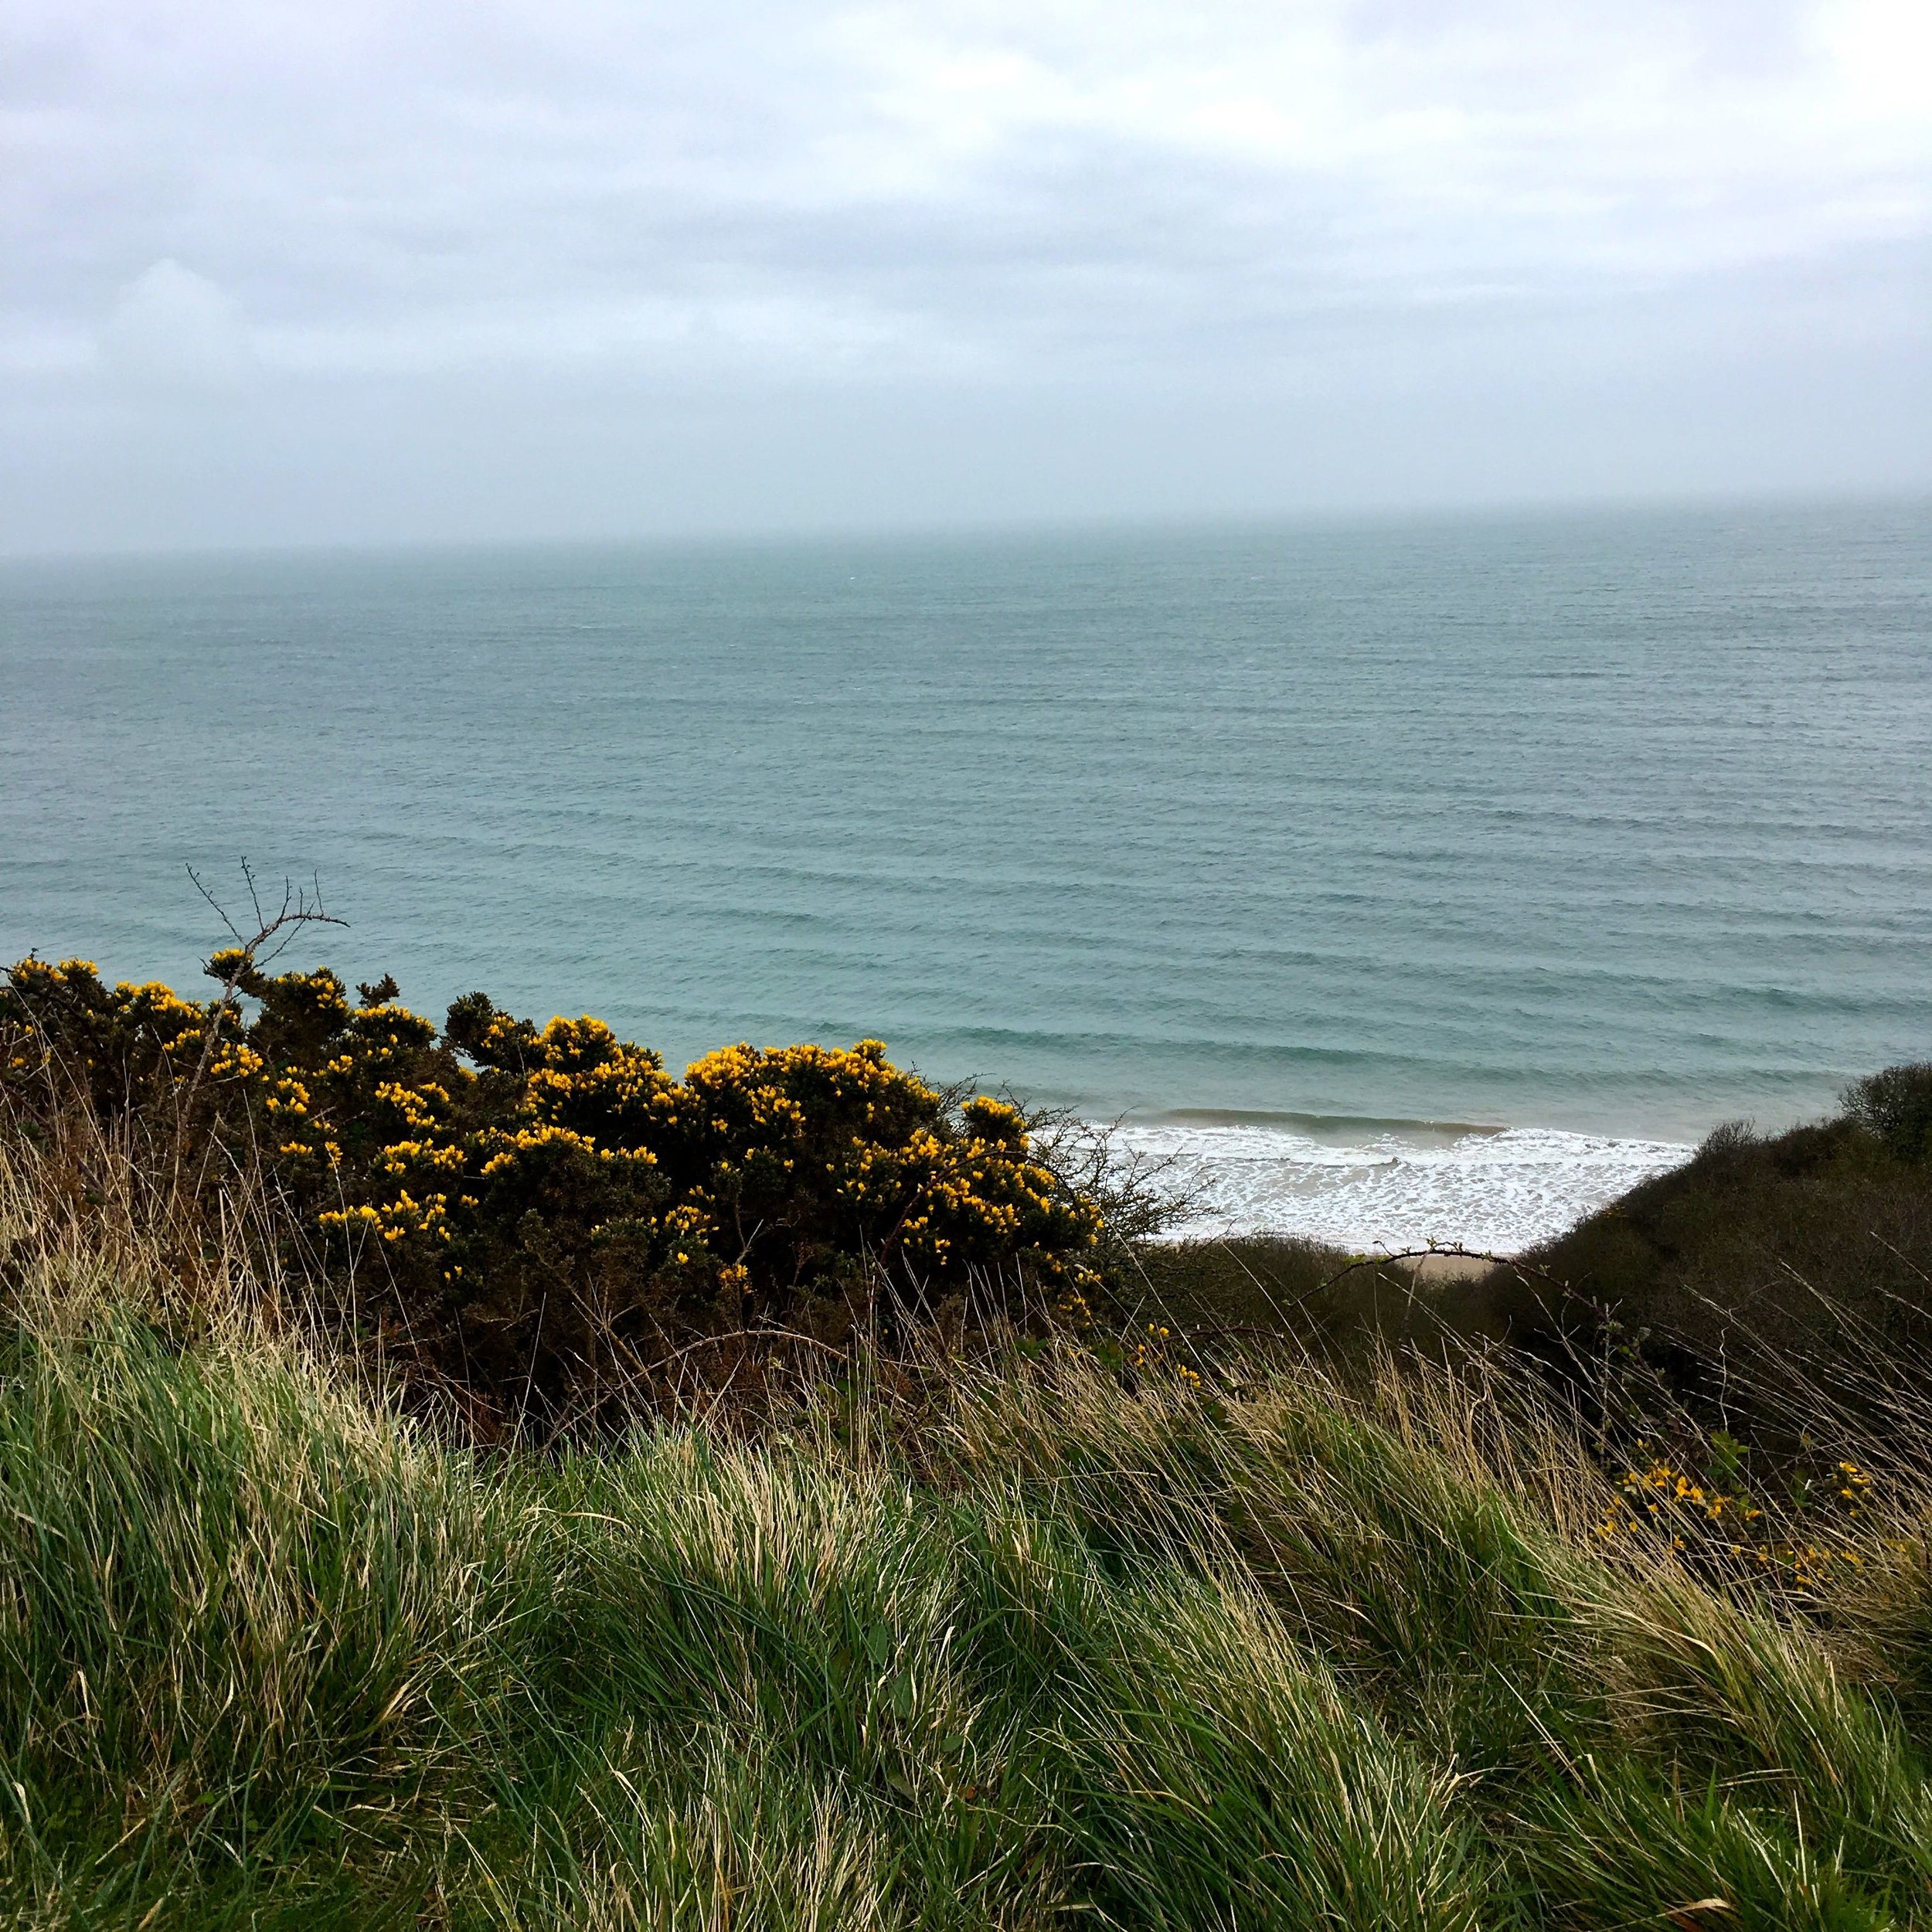 But still some glimpses of the sea framed perfectly by the gorse bushes